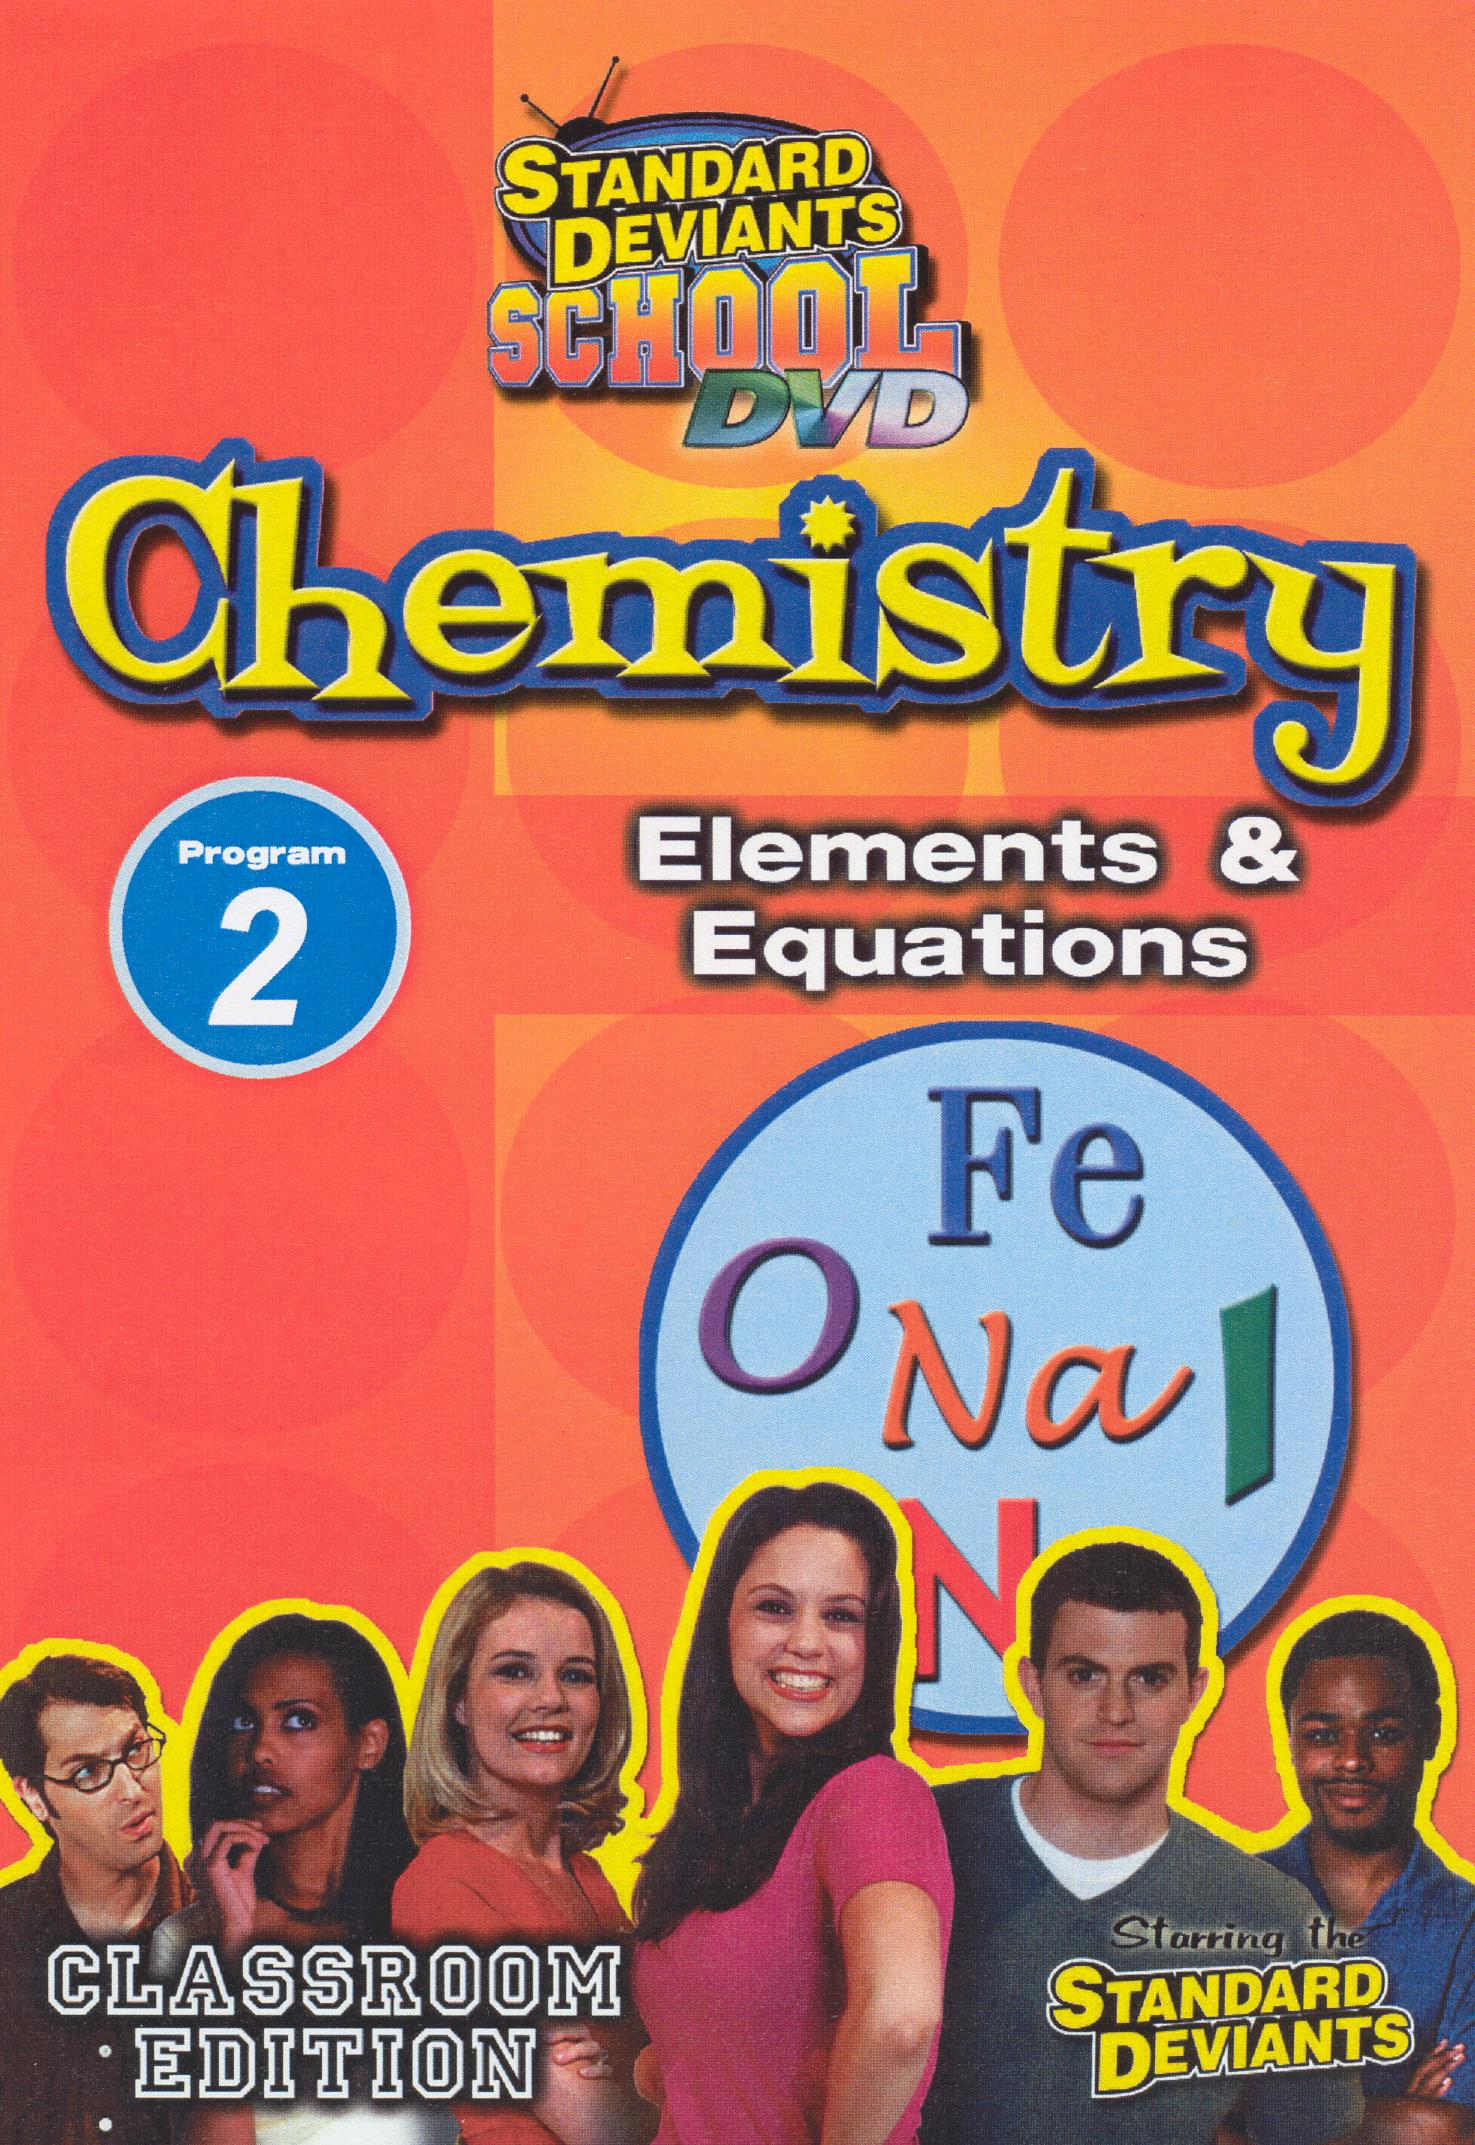 Standard Deviants School: Chemistry, Program 2